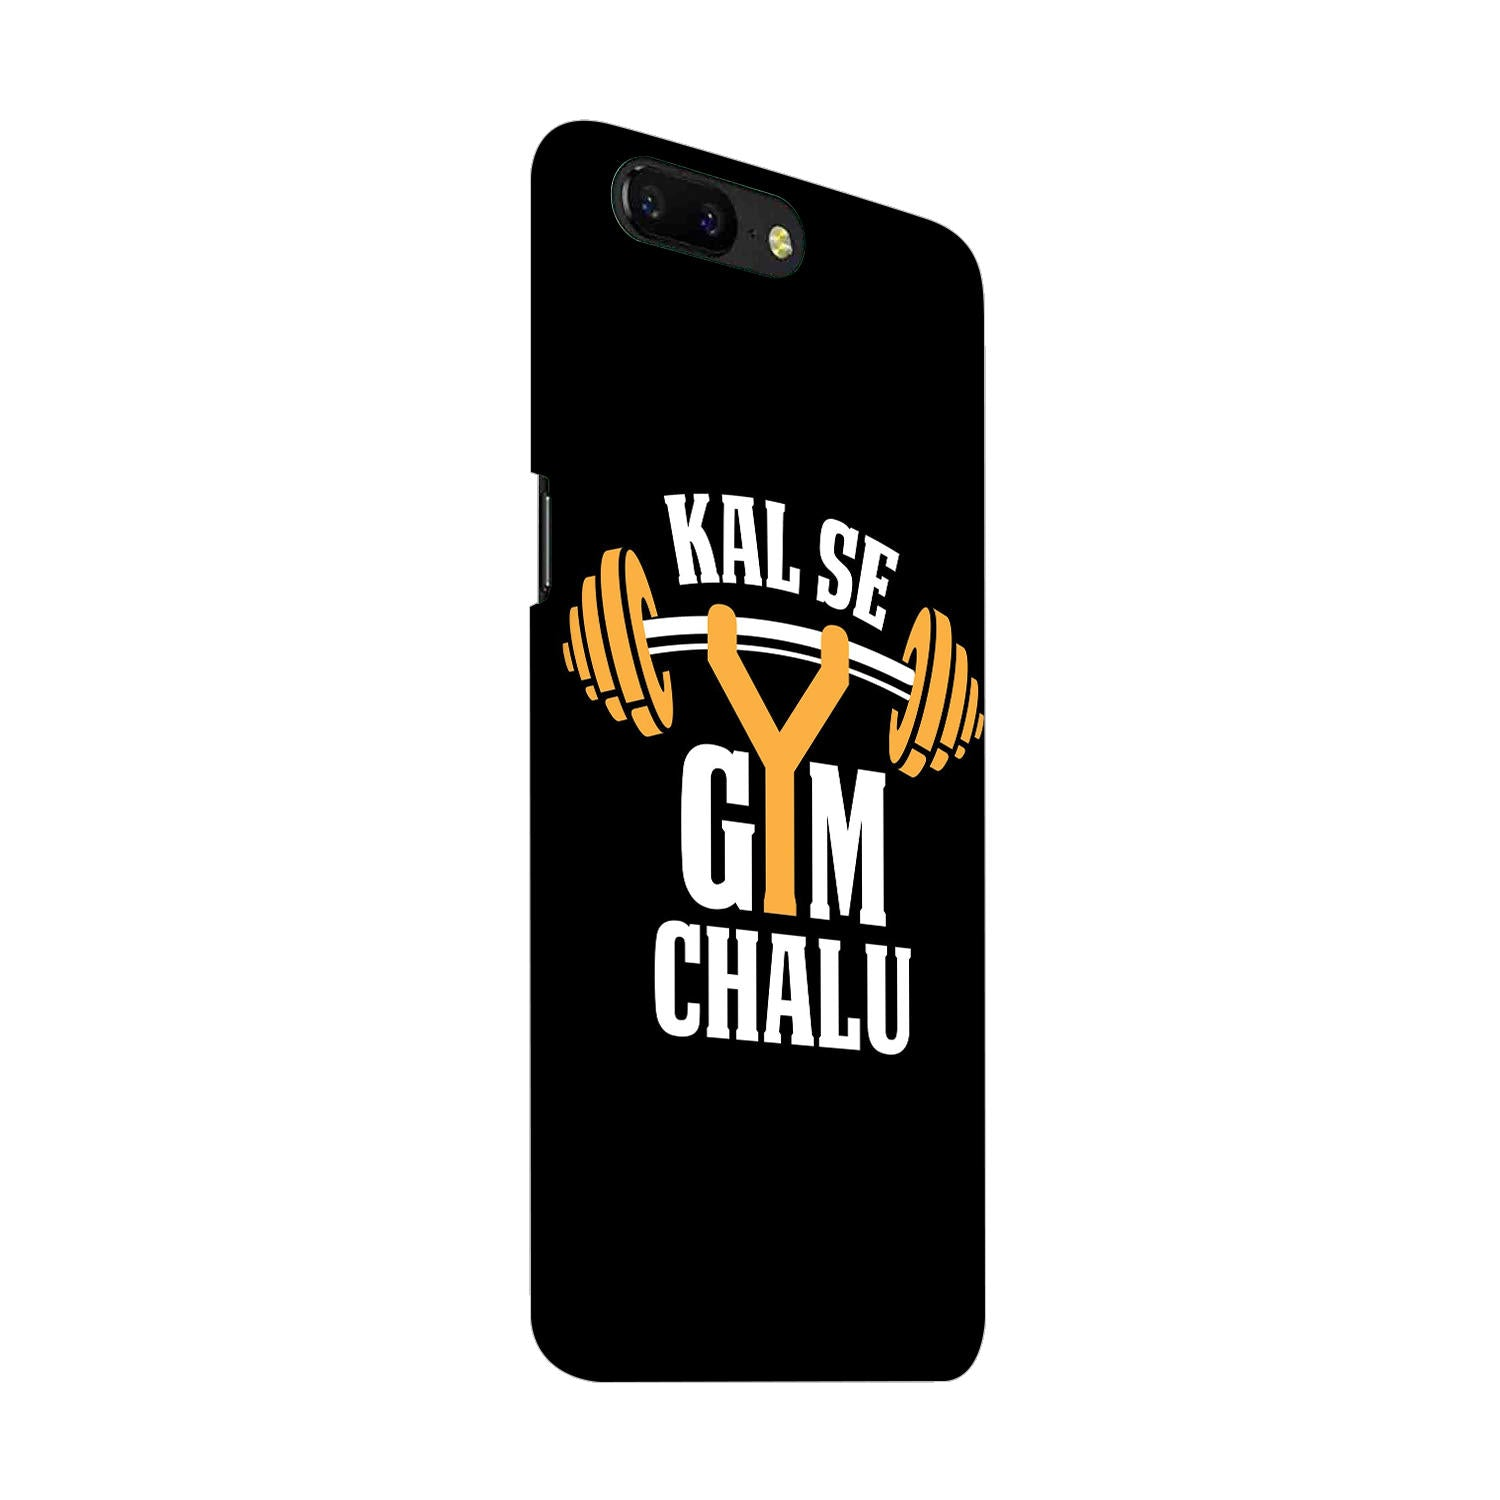 Kal Se Gym Chalu For Fitness Lovers OnePlus 5 Mobile Cover Case